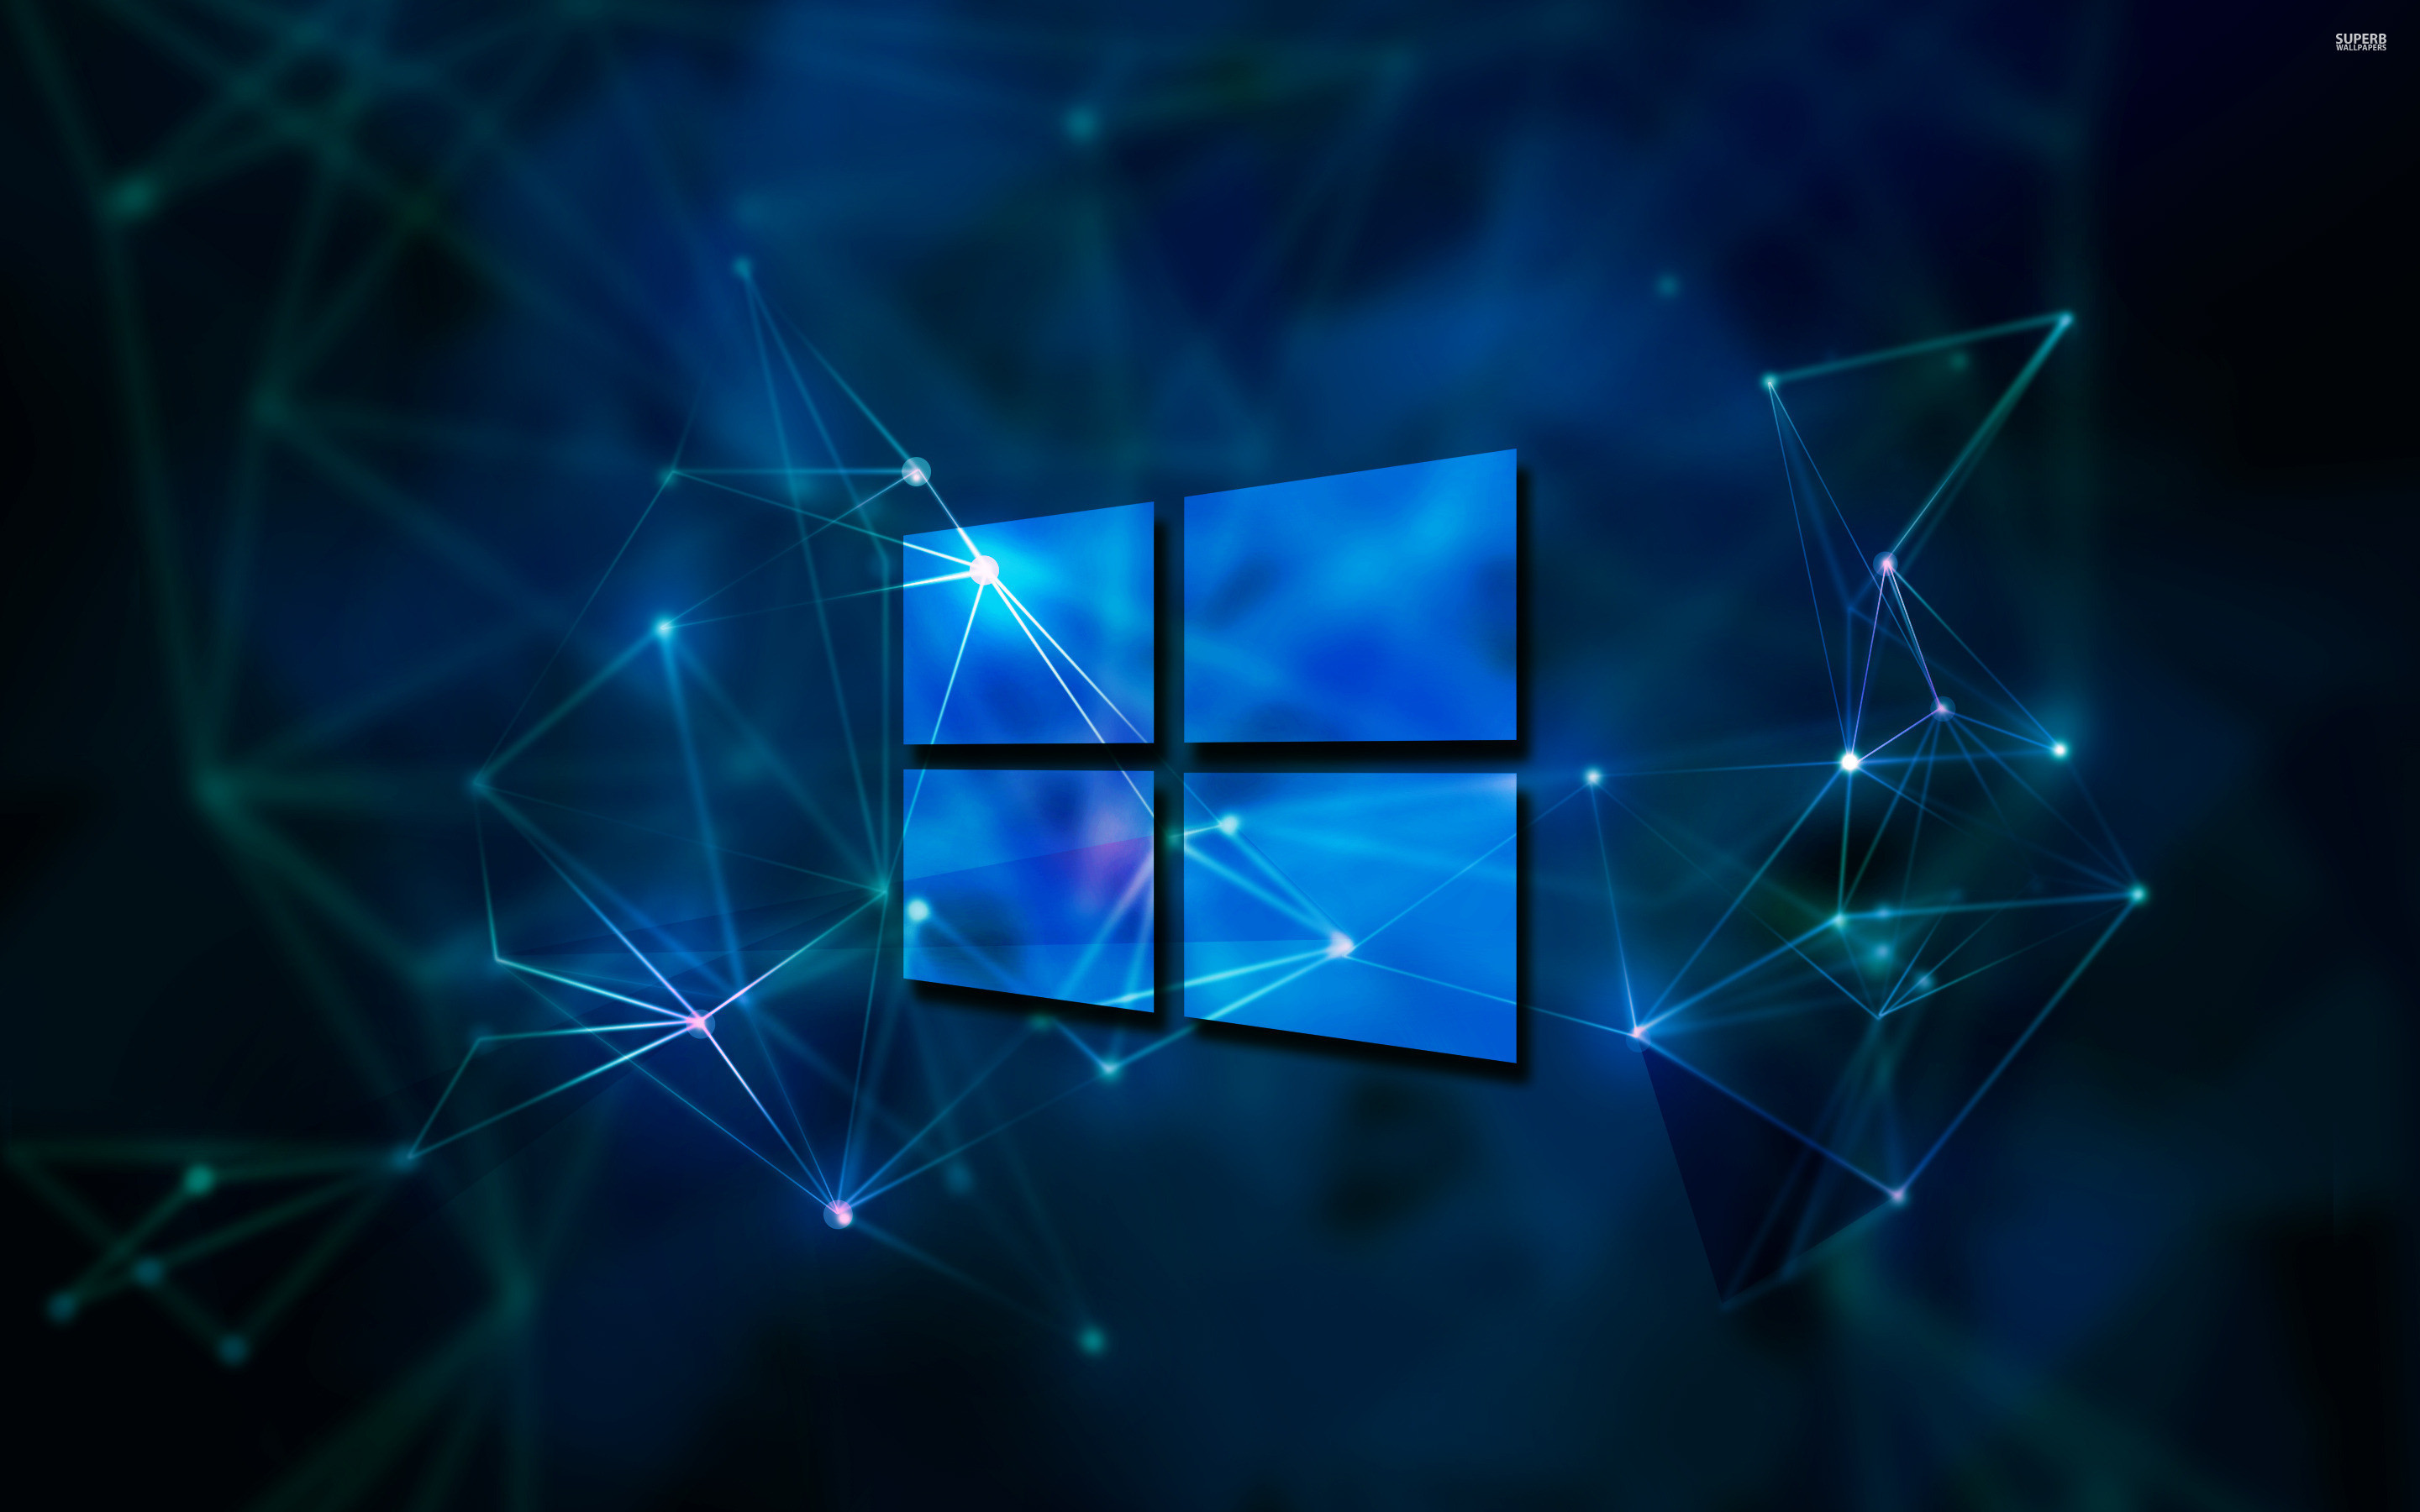 Windows Wallpapers HD Desktop Backgrounds Images and Pictures